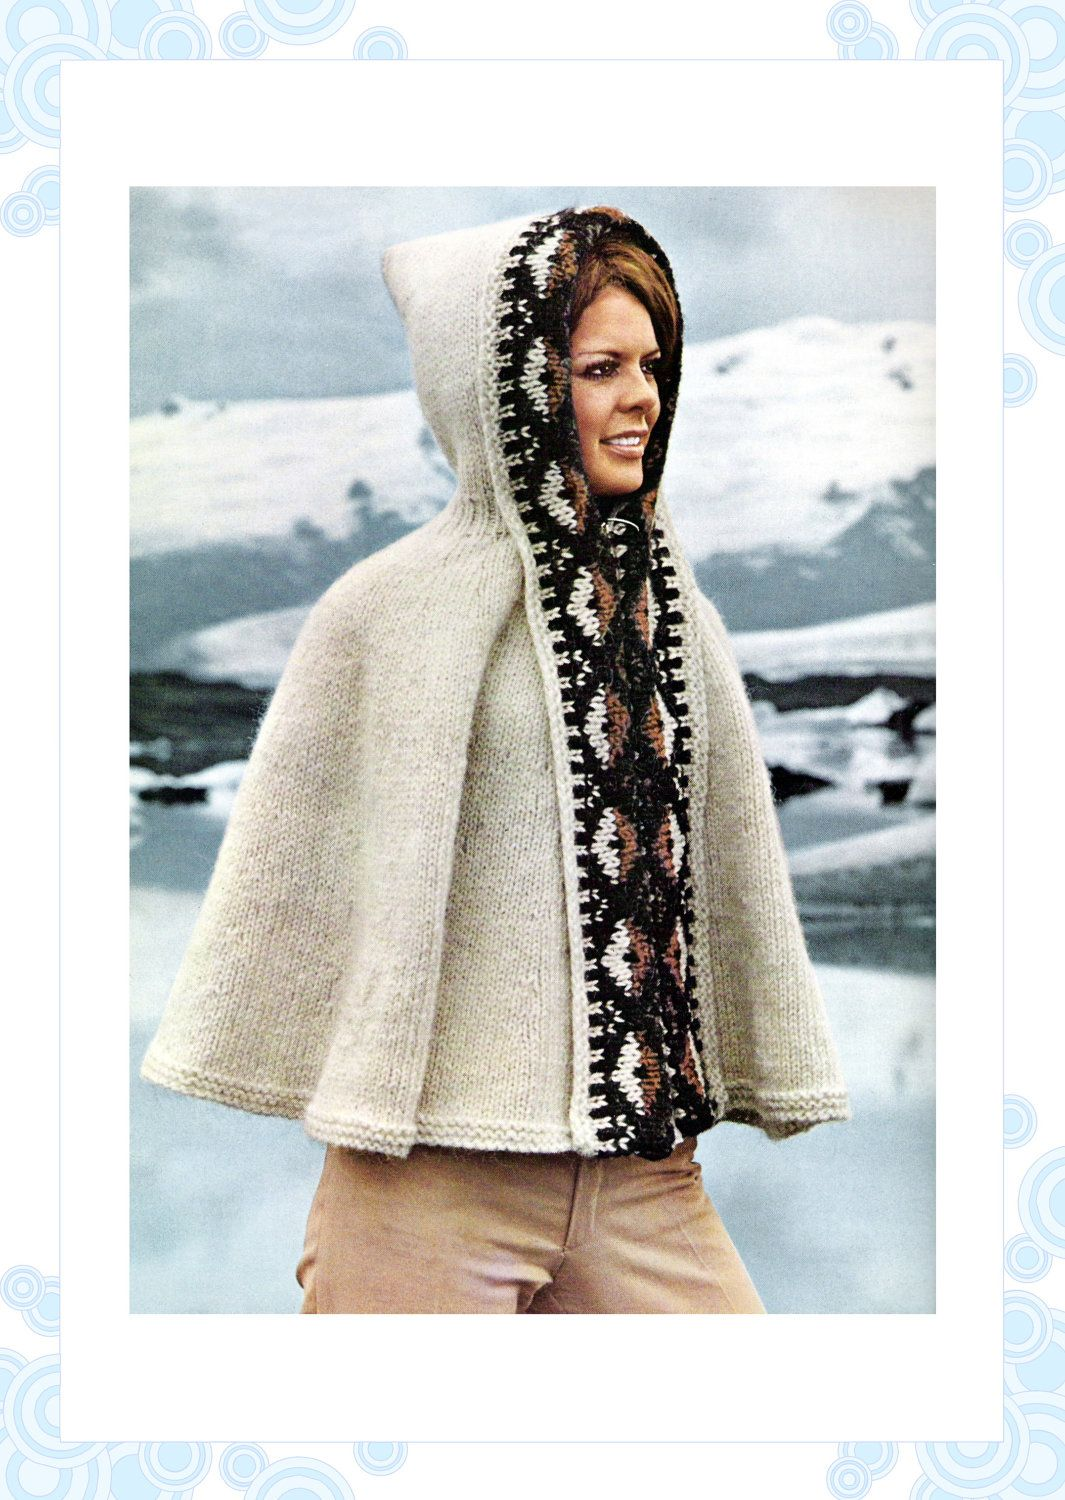 vintage knitting pattern - icelandic hooded poncho - cape - 60s ...